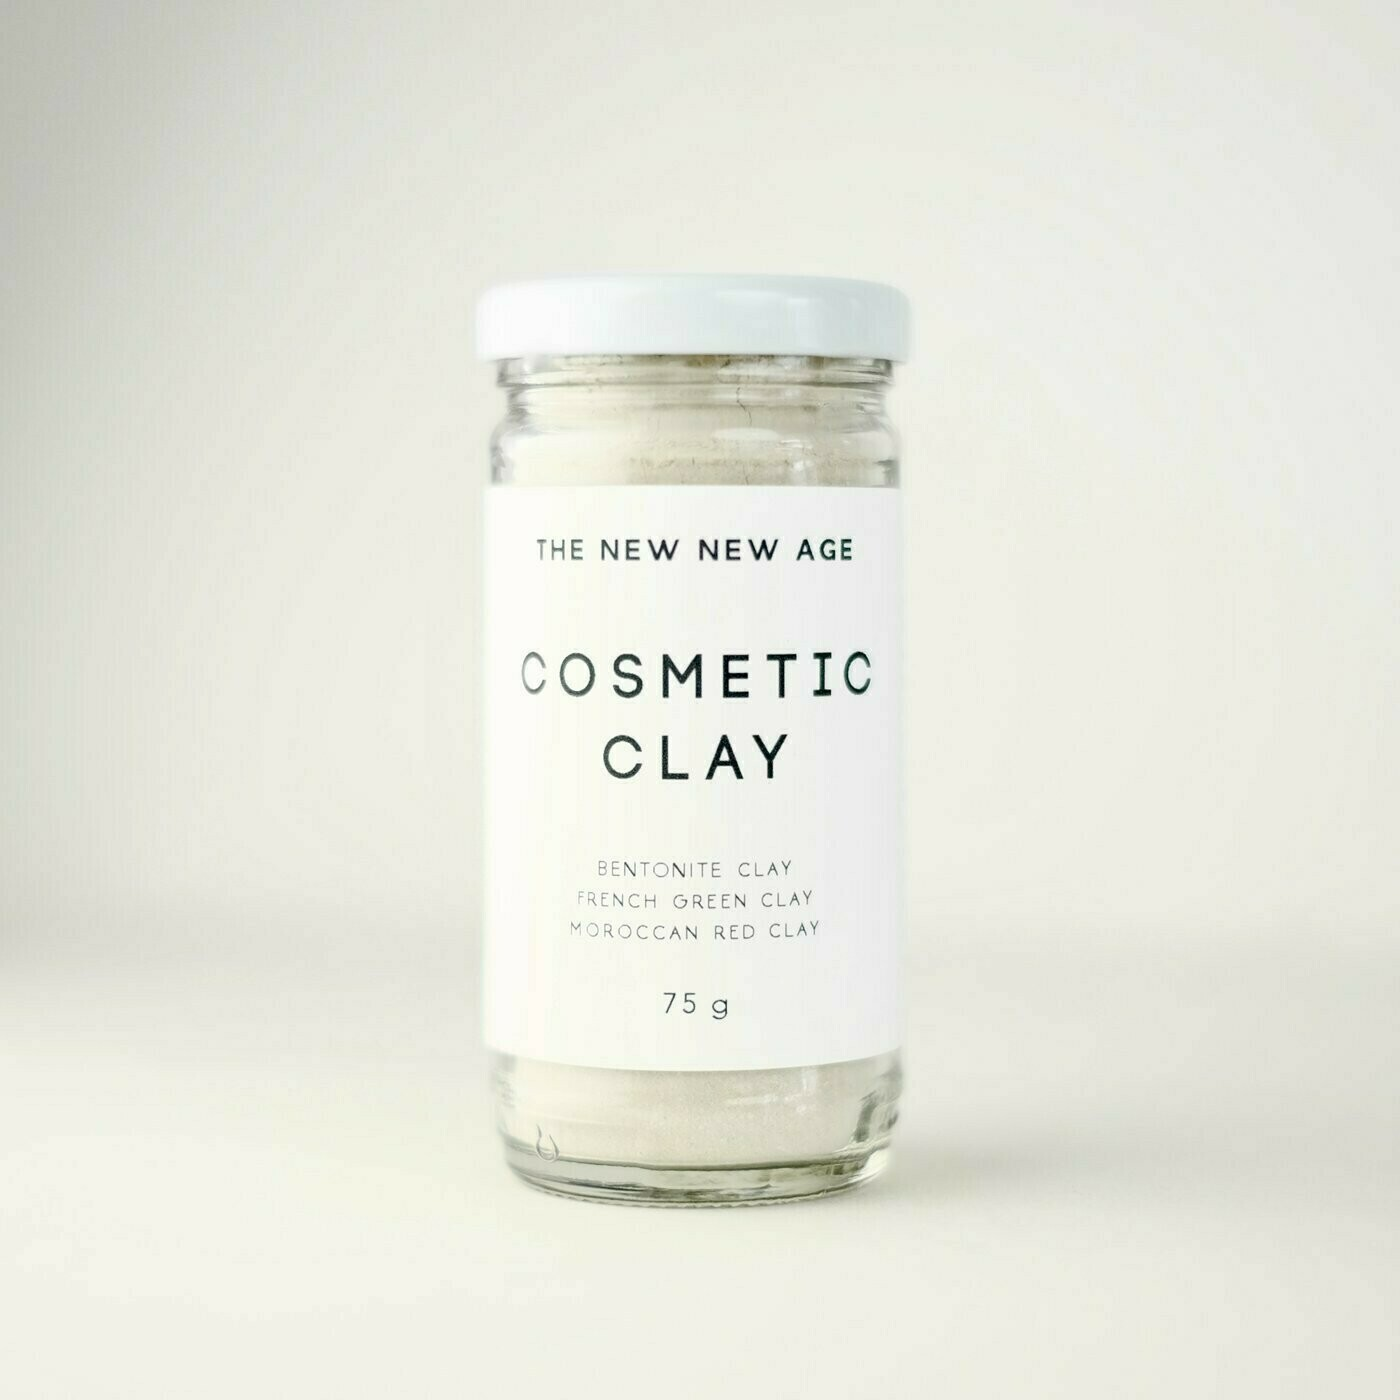 The New New Age Cosmetic Clay Mask